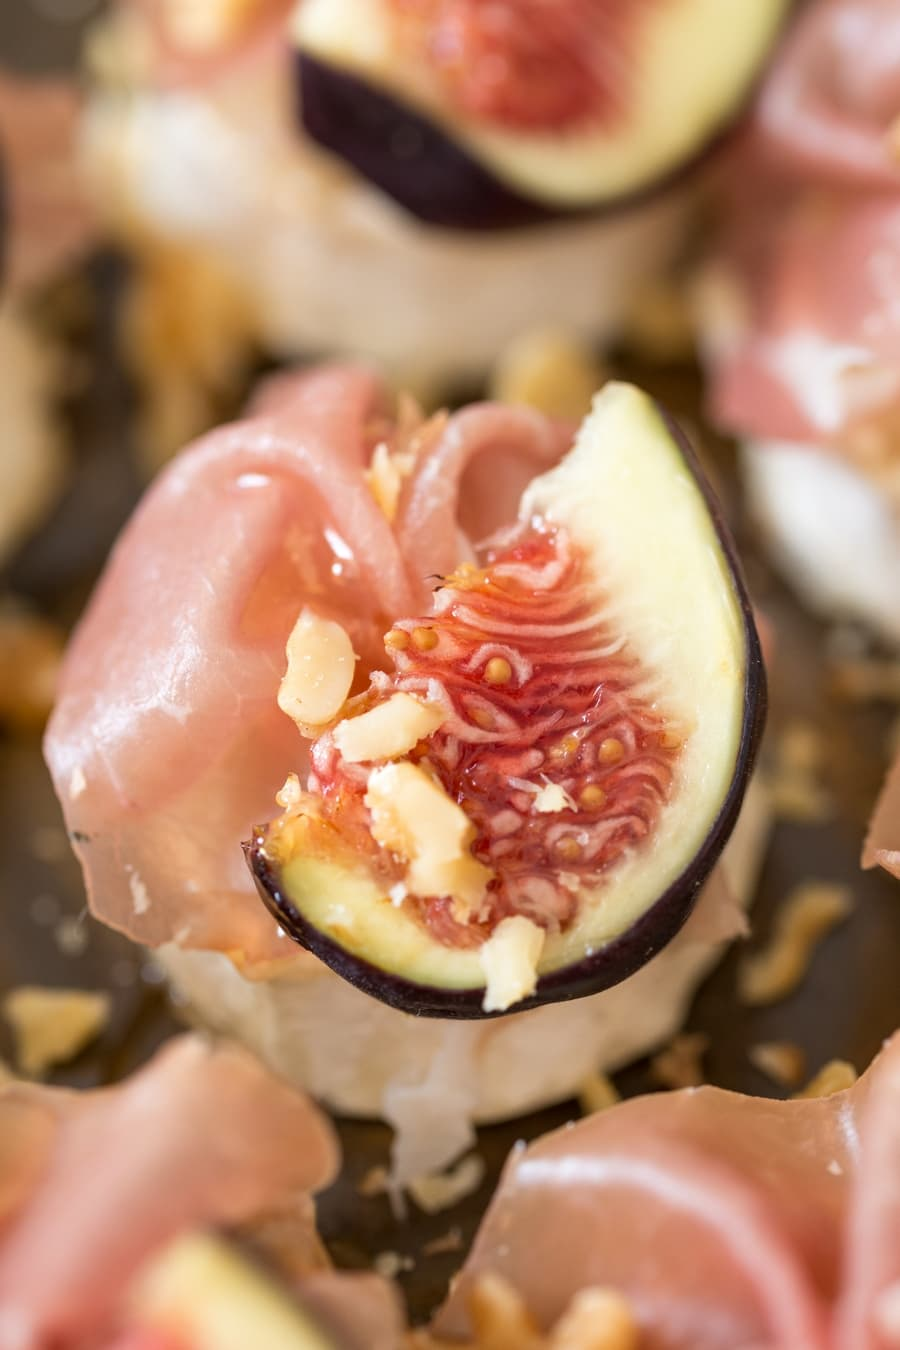 Baked goat cheese log with figs and prosciutto.